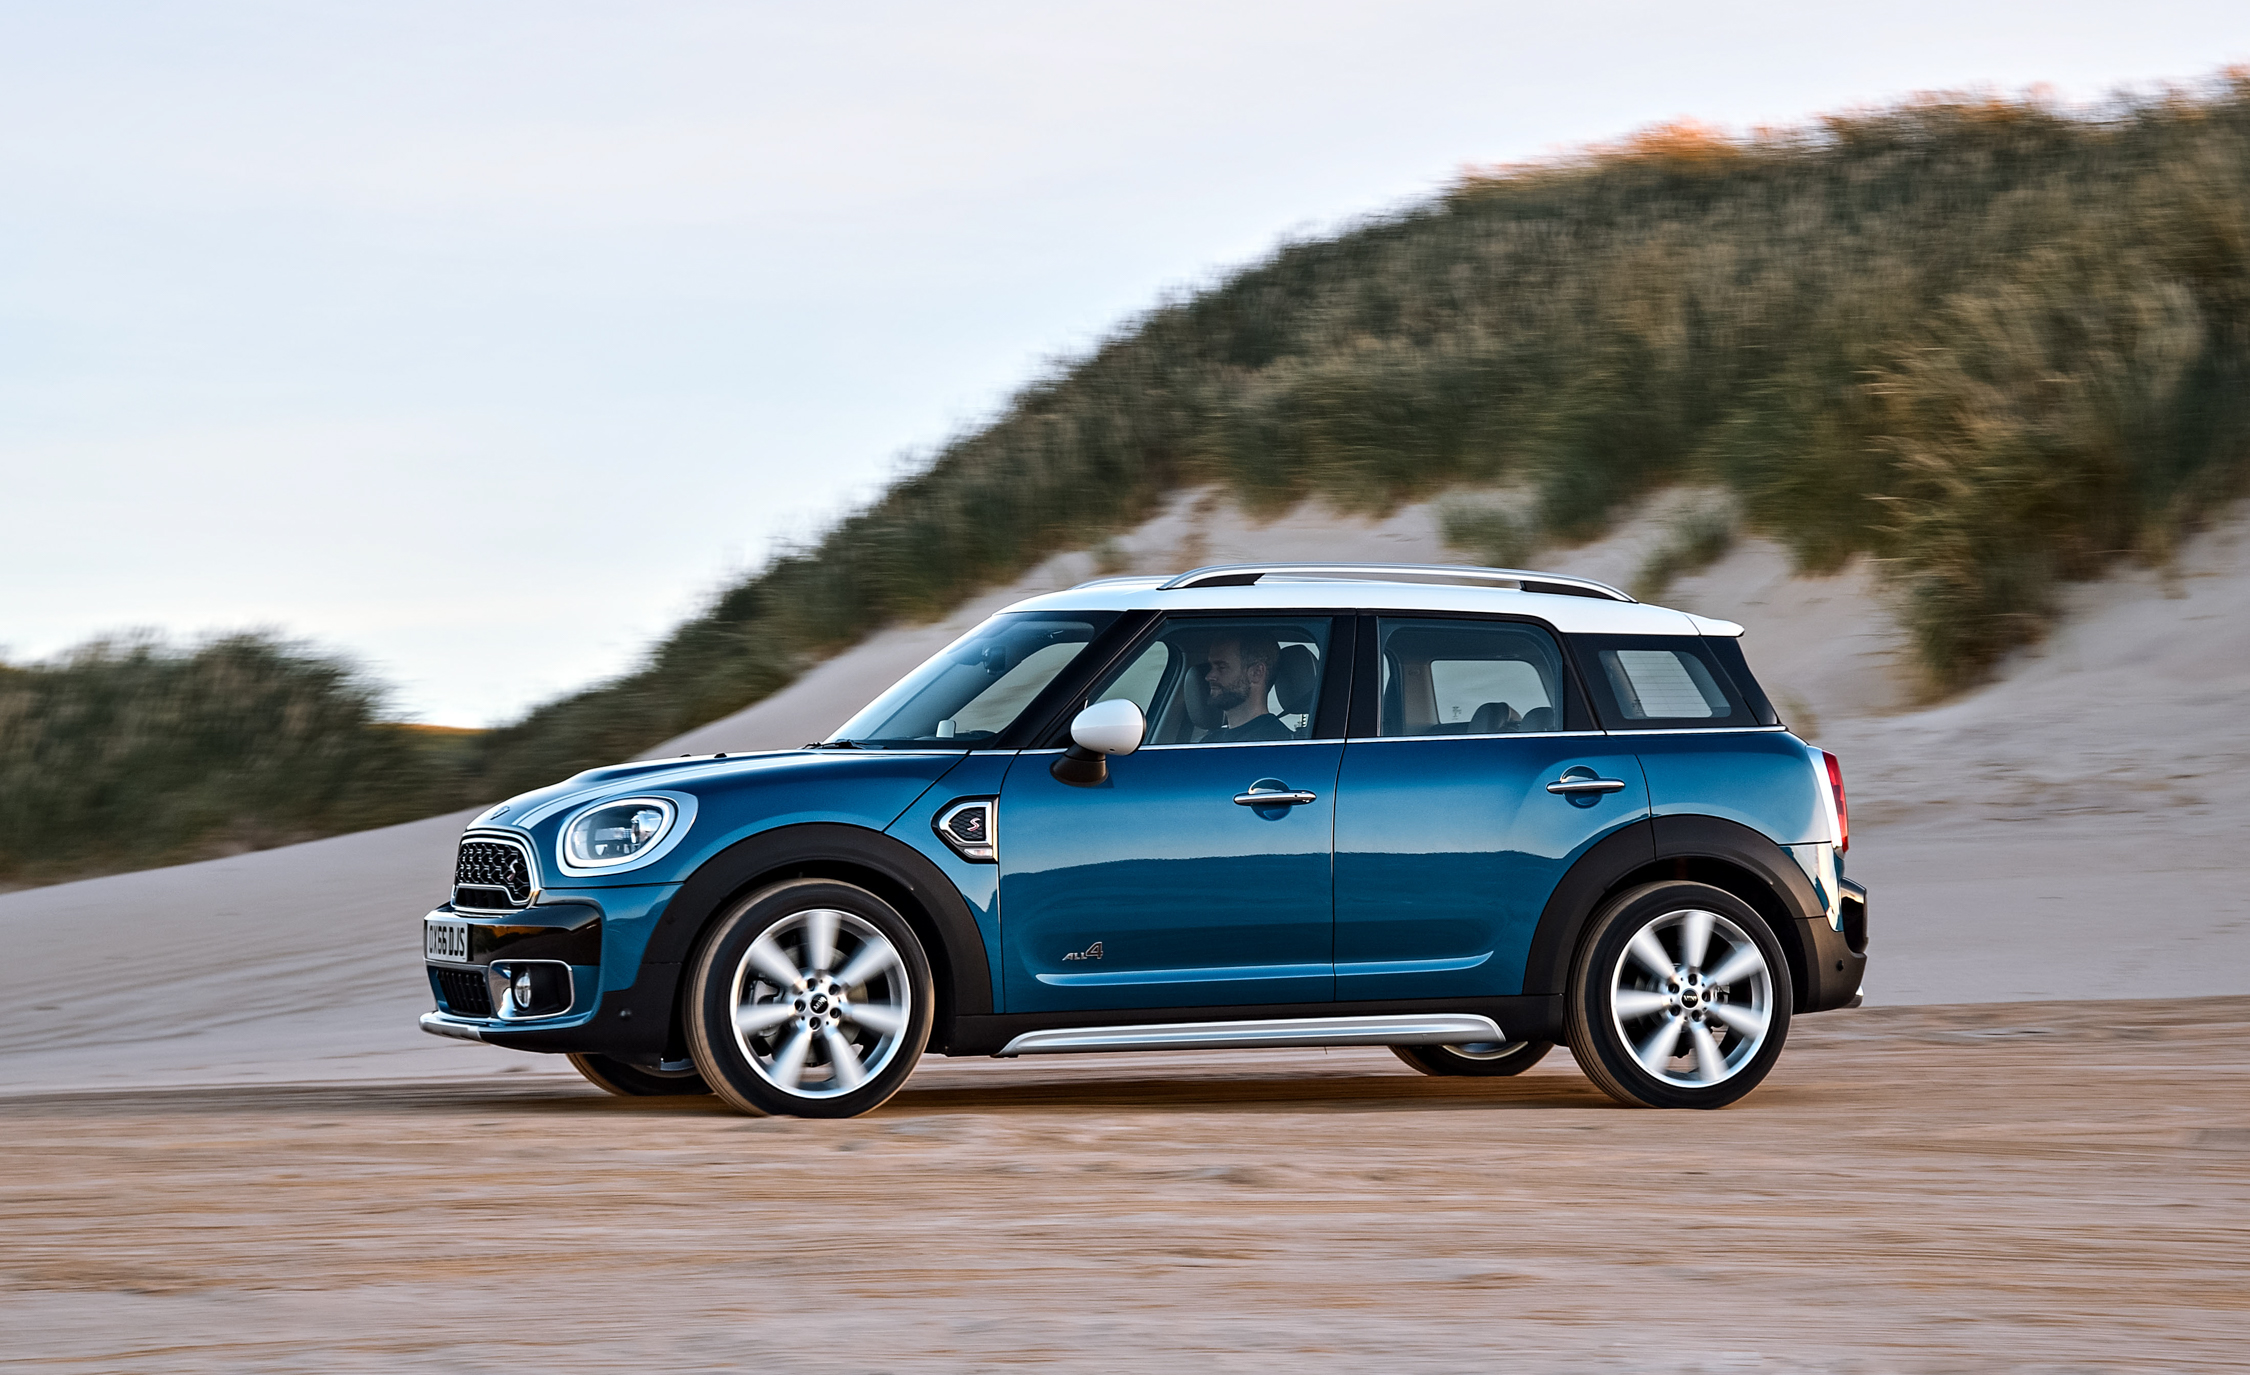 2017 Mini Cooper S Countryman Test Drive Side And Front View (Photo 20 of 61)